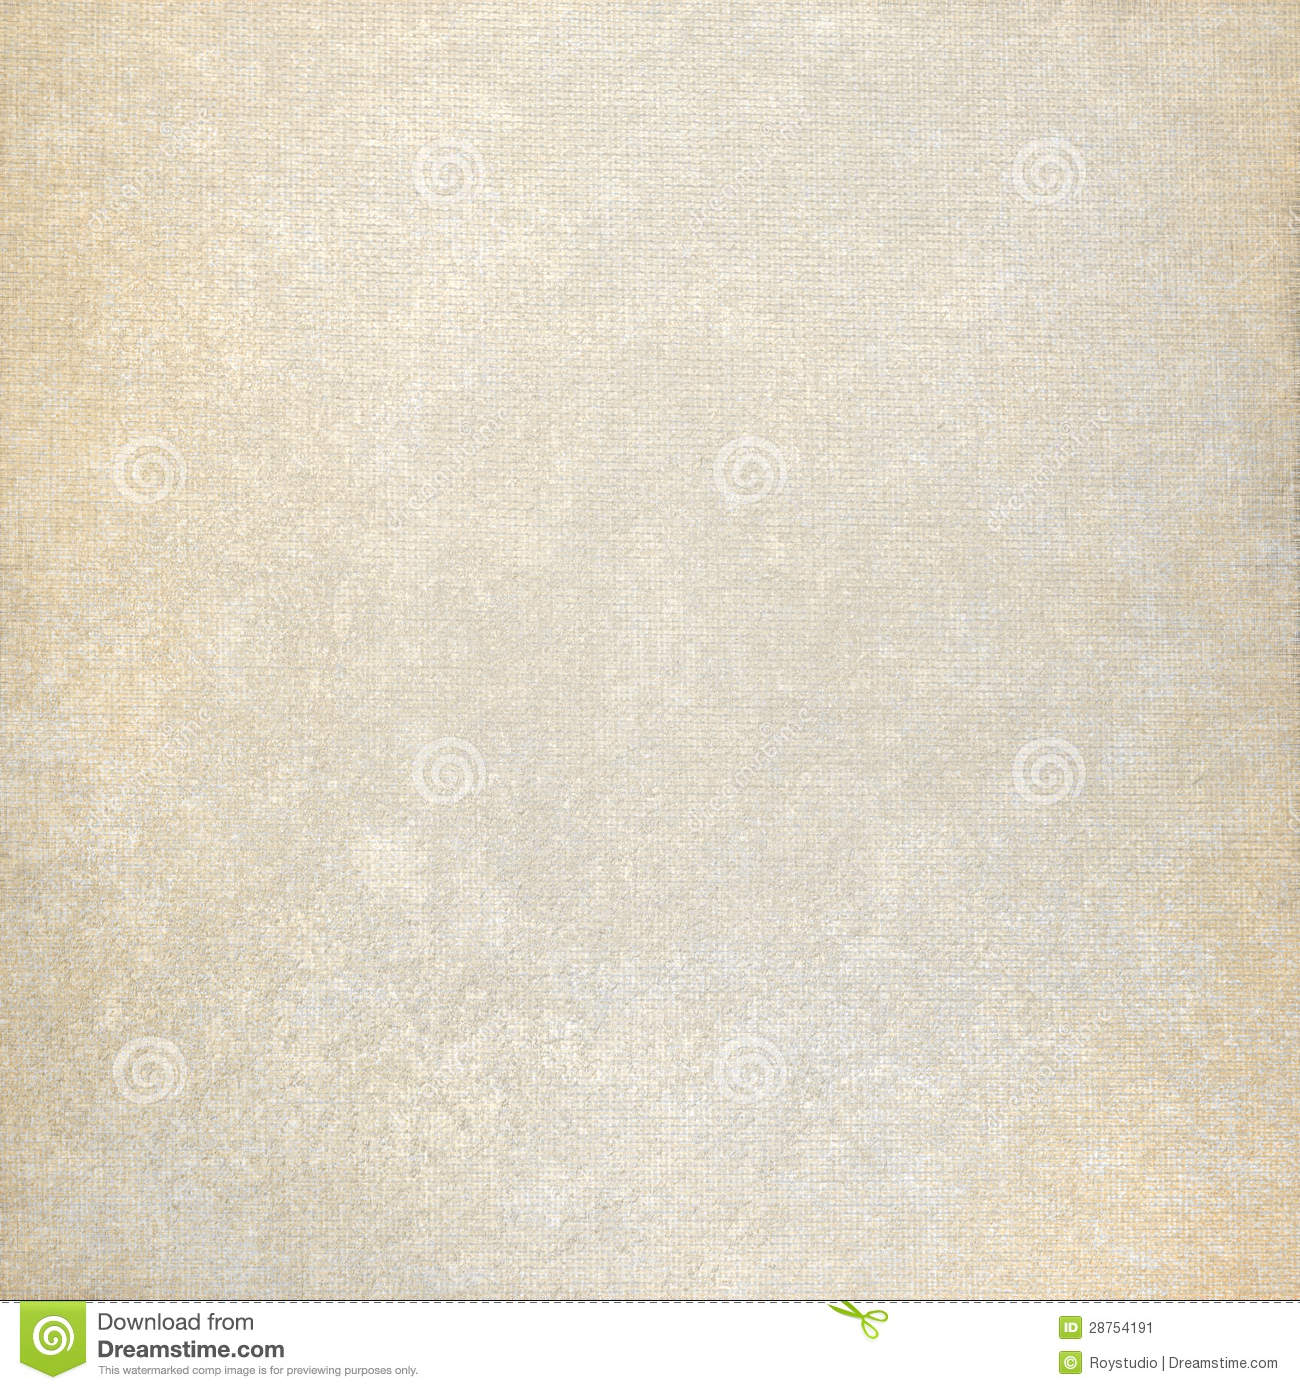 Old paper background and beige fabric canvas texture with subtle stains